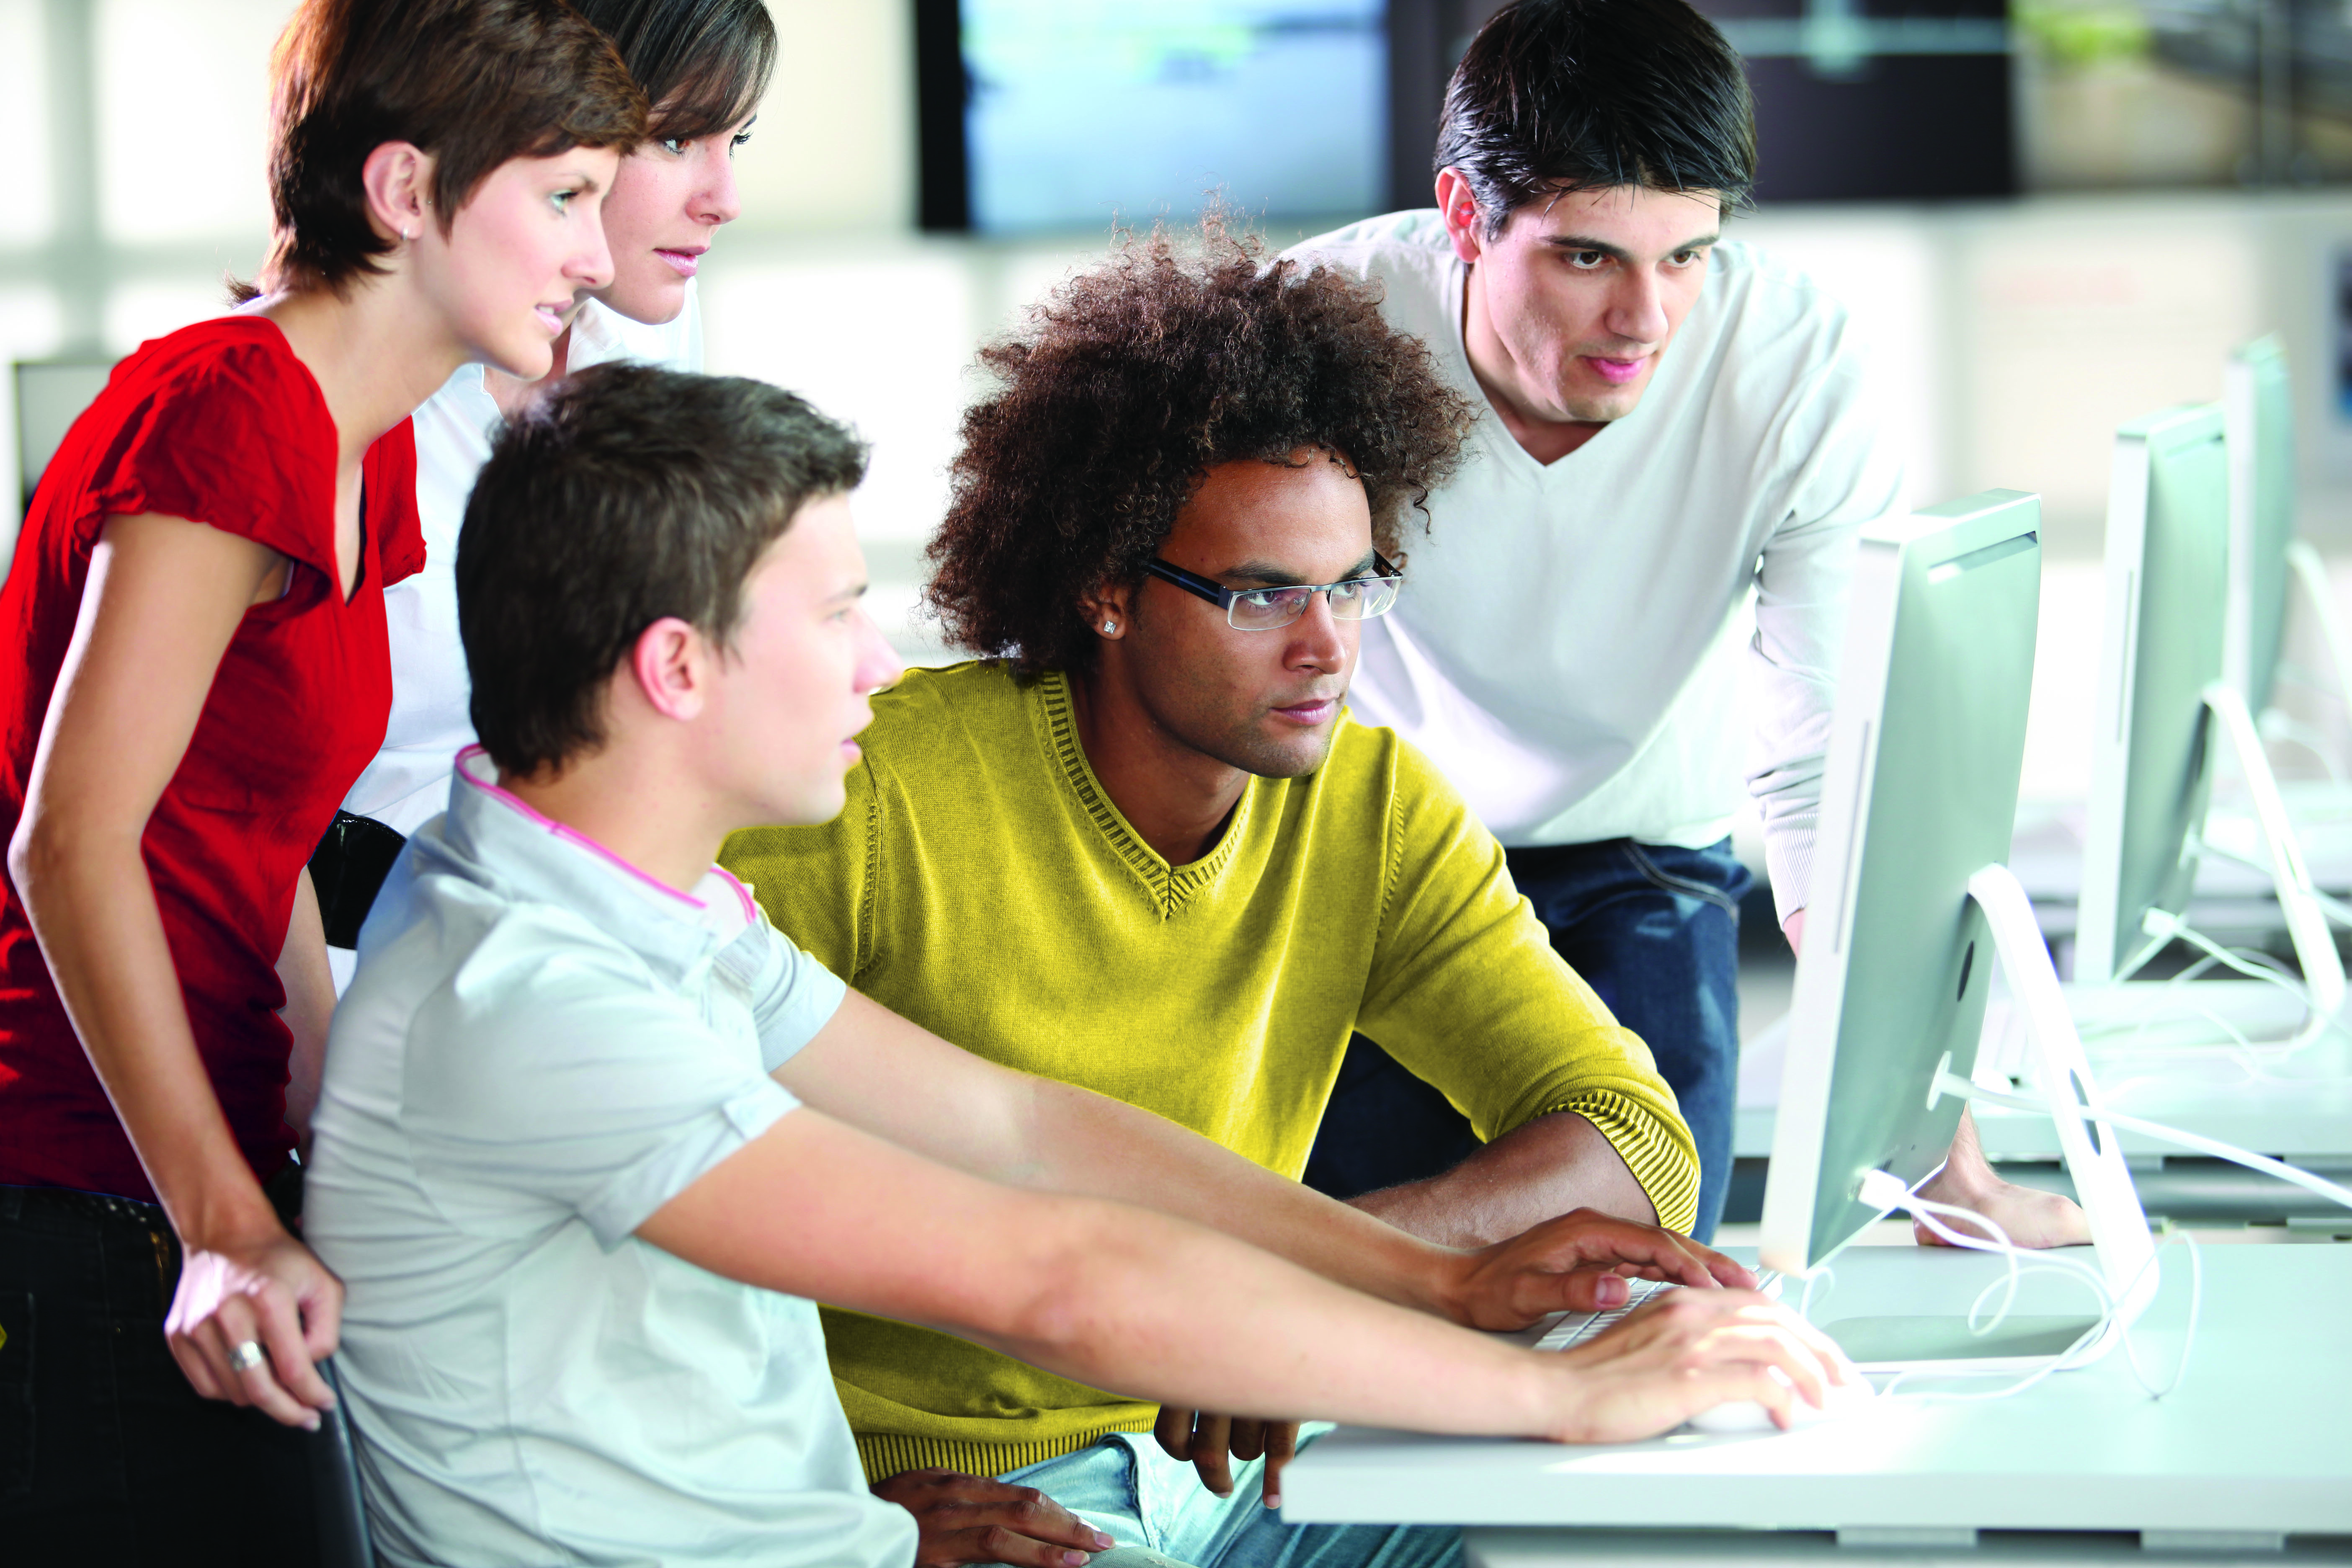 Graduates could be offered a variety of roles in industry